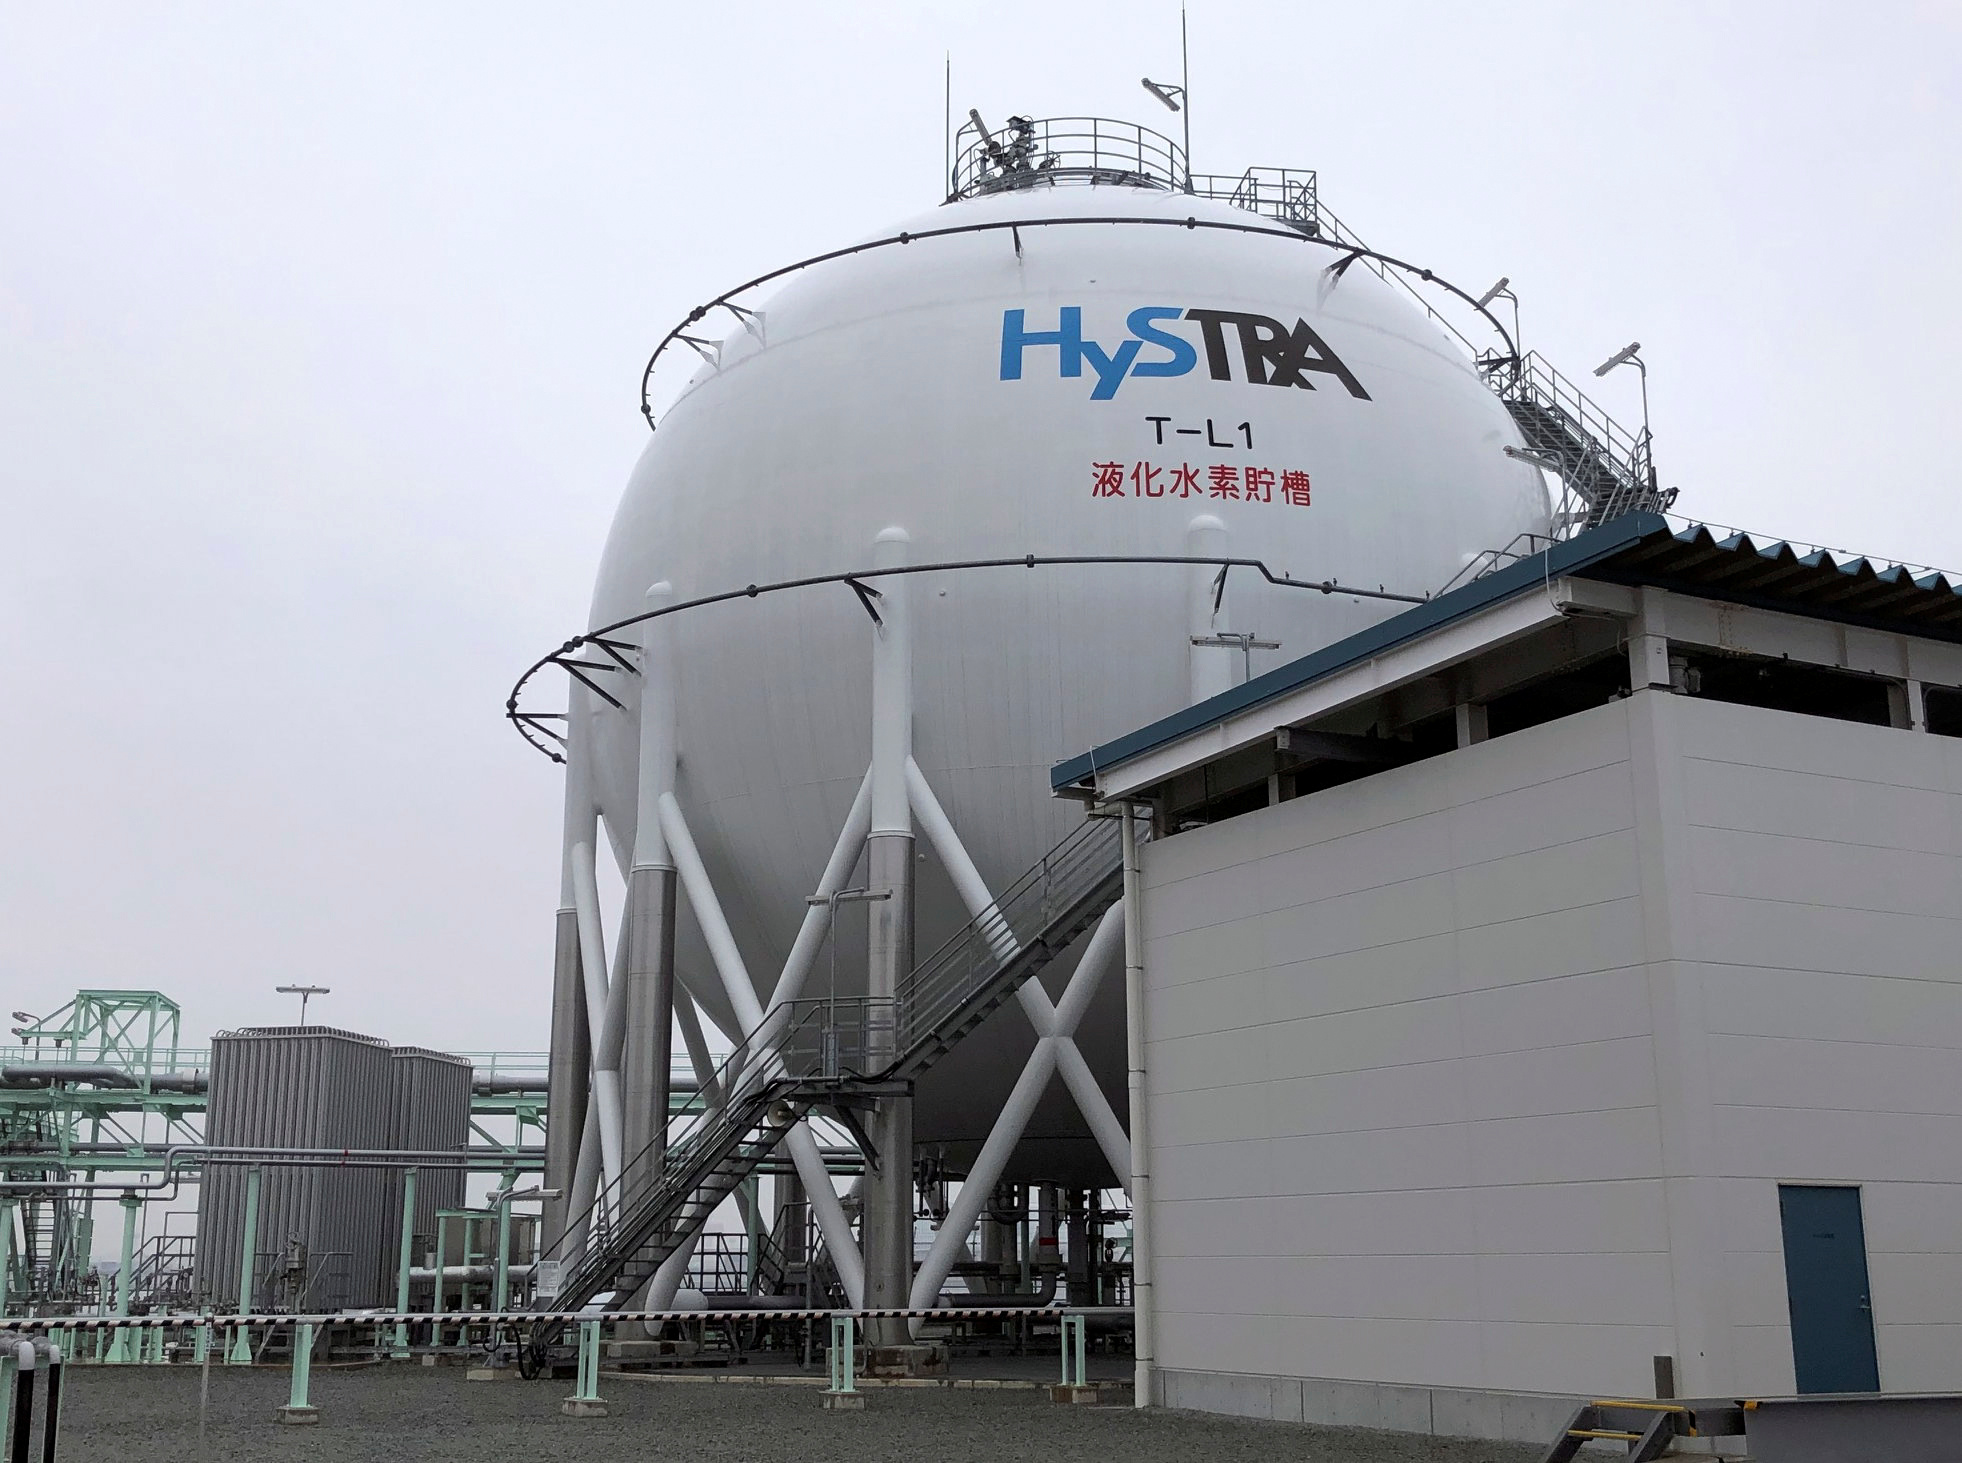 The logo of the CO2-free Hydrogen Energy Supply-chain Technology Research Association (HySTRA) is seen on a liquefied hydrogen storage tank built by Kawasaki Heavy Industries at the hydrogen receiving terminal at the Kobe Airport Island in Kobe, western Japan January 22, 2021. REUTERS/Yuka Obayashi